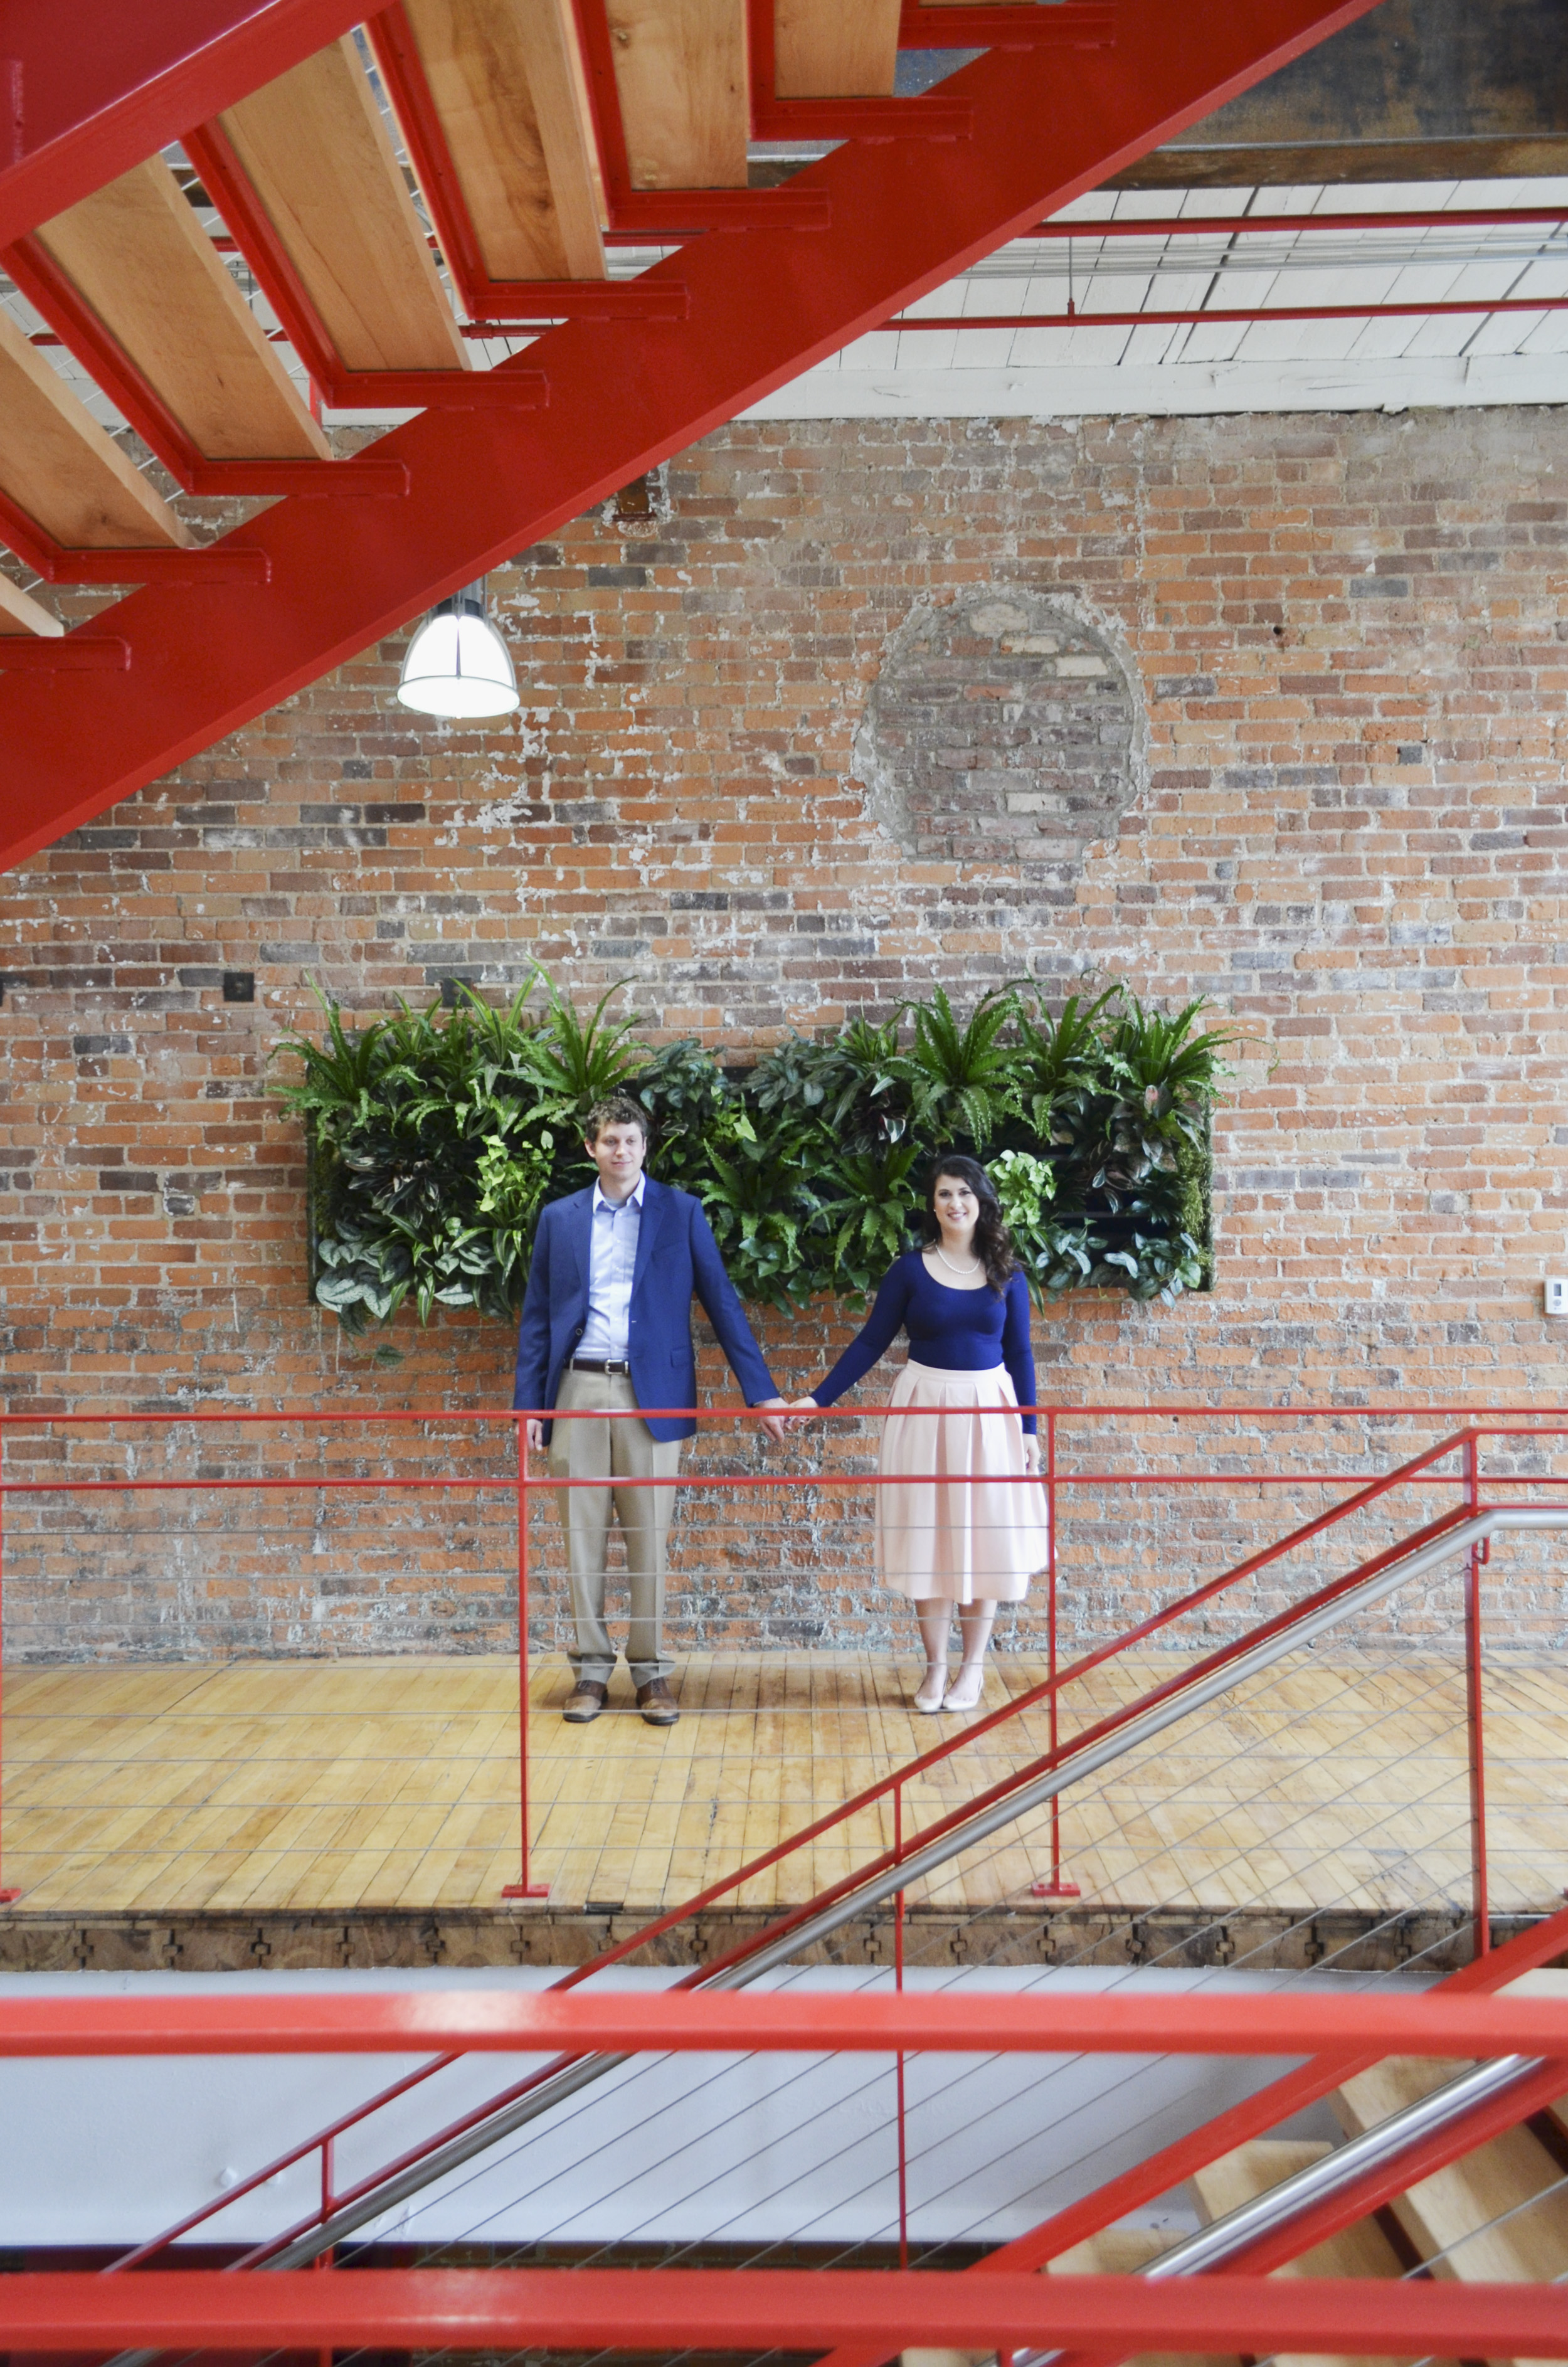 Revolution Mill Events Center Engagement Photography Greensboro North Carolina by Kayli LaFon Photography